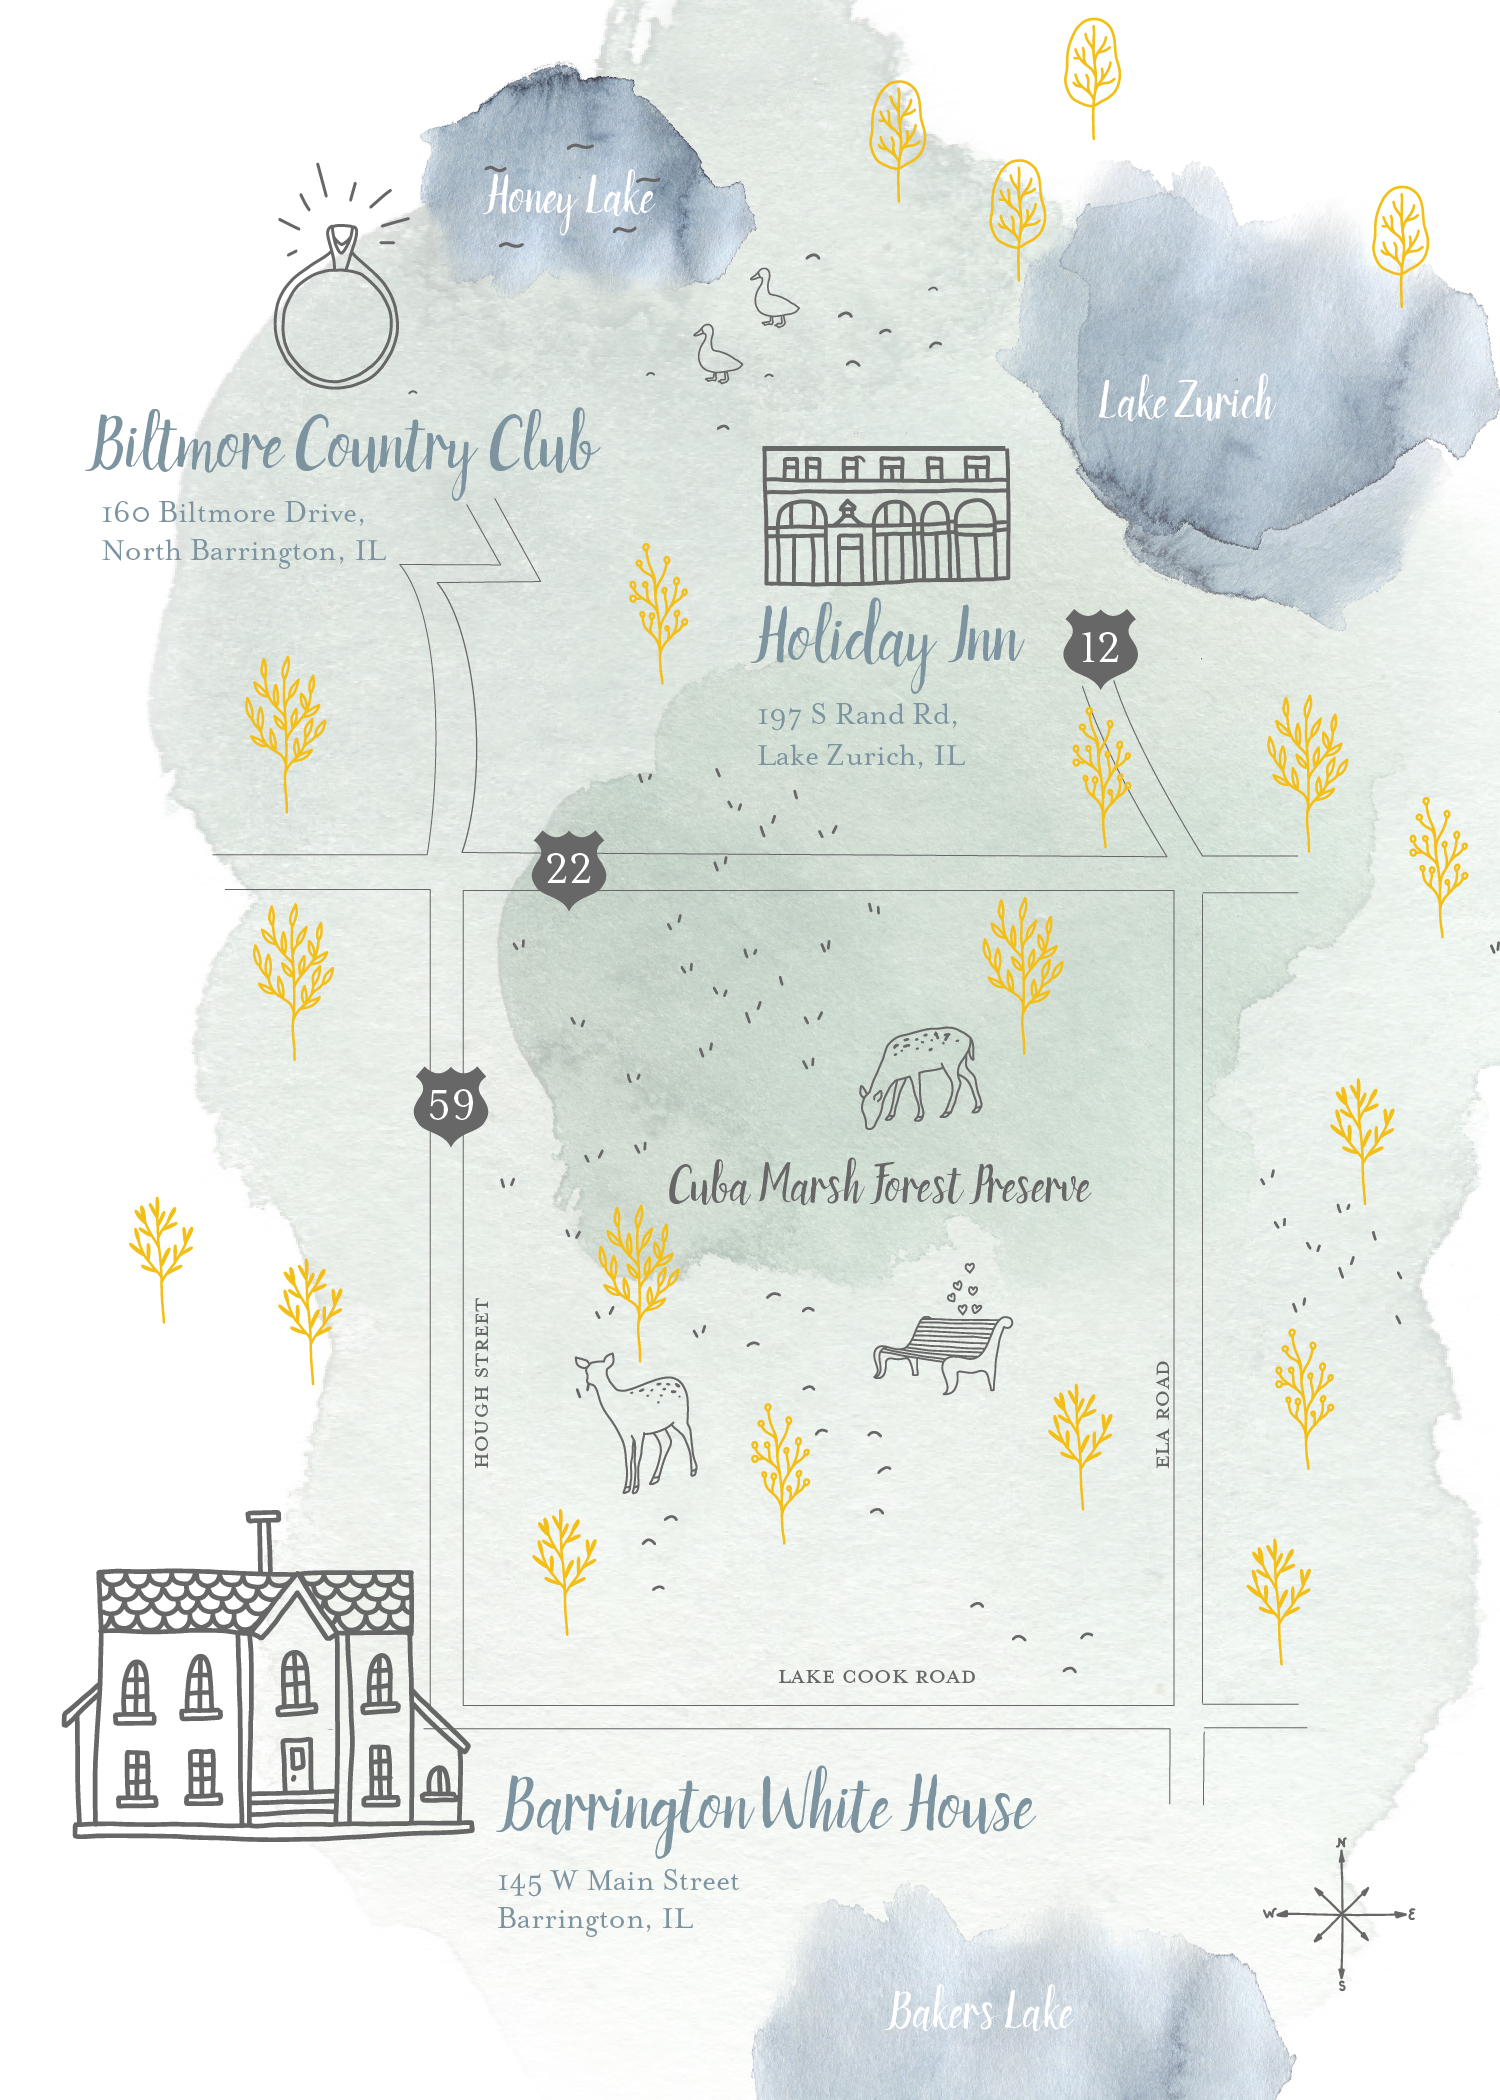 EVENT BRANDING  for Lauren & Zach's wedding. Here is a map that was included with the invitation.